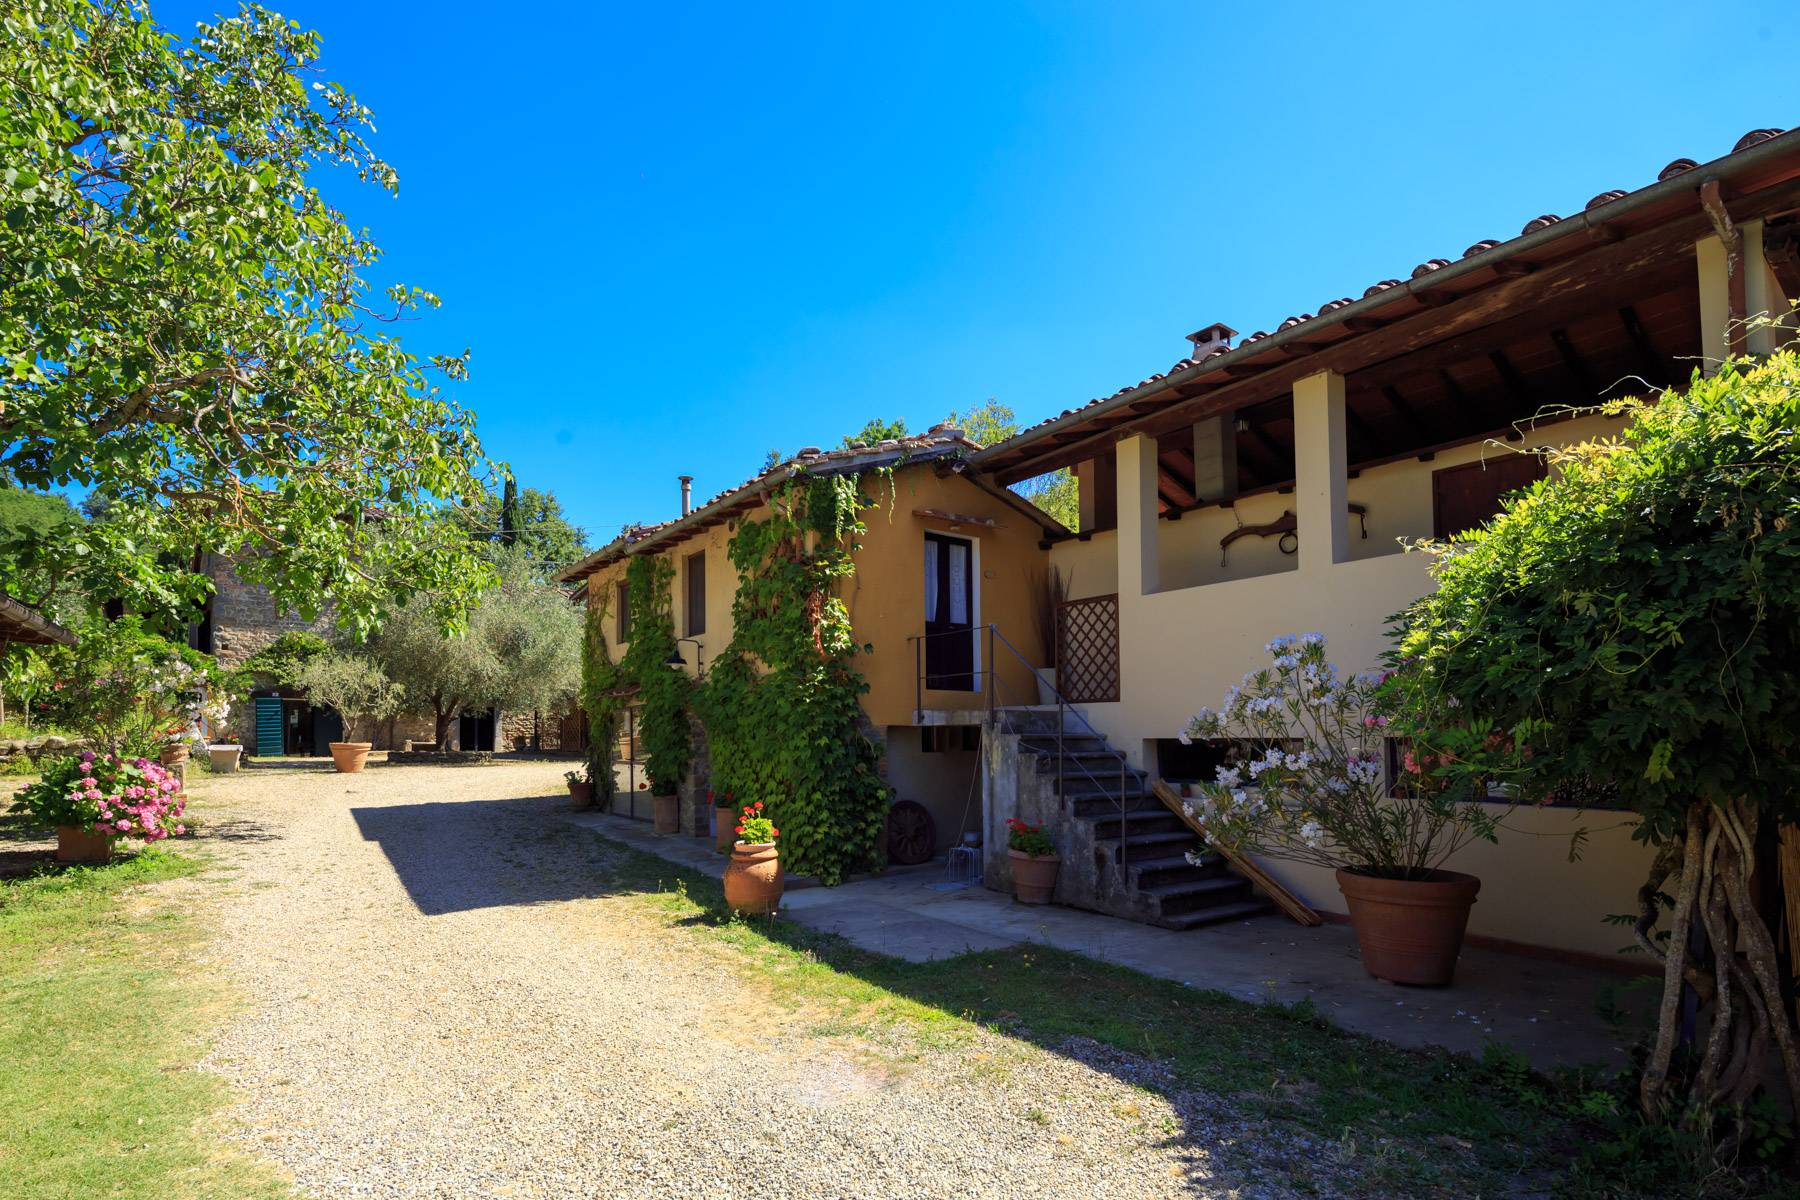 Beautiful Hamlet with an Ancient-Mill in the heart of the Arno Valley - 2